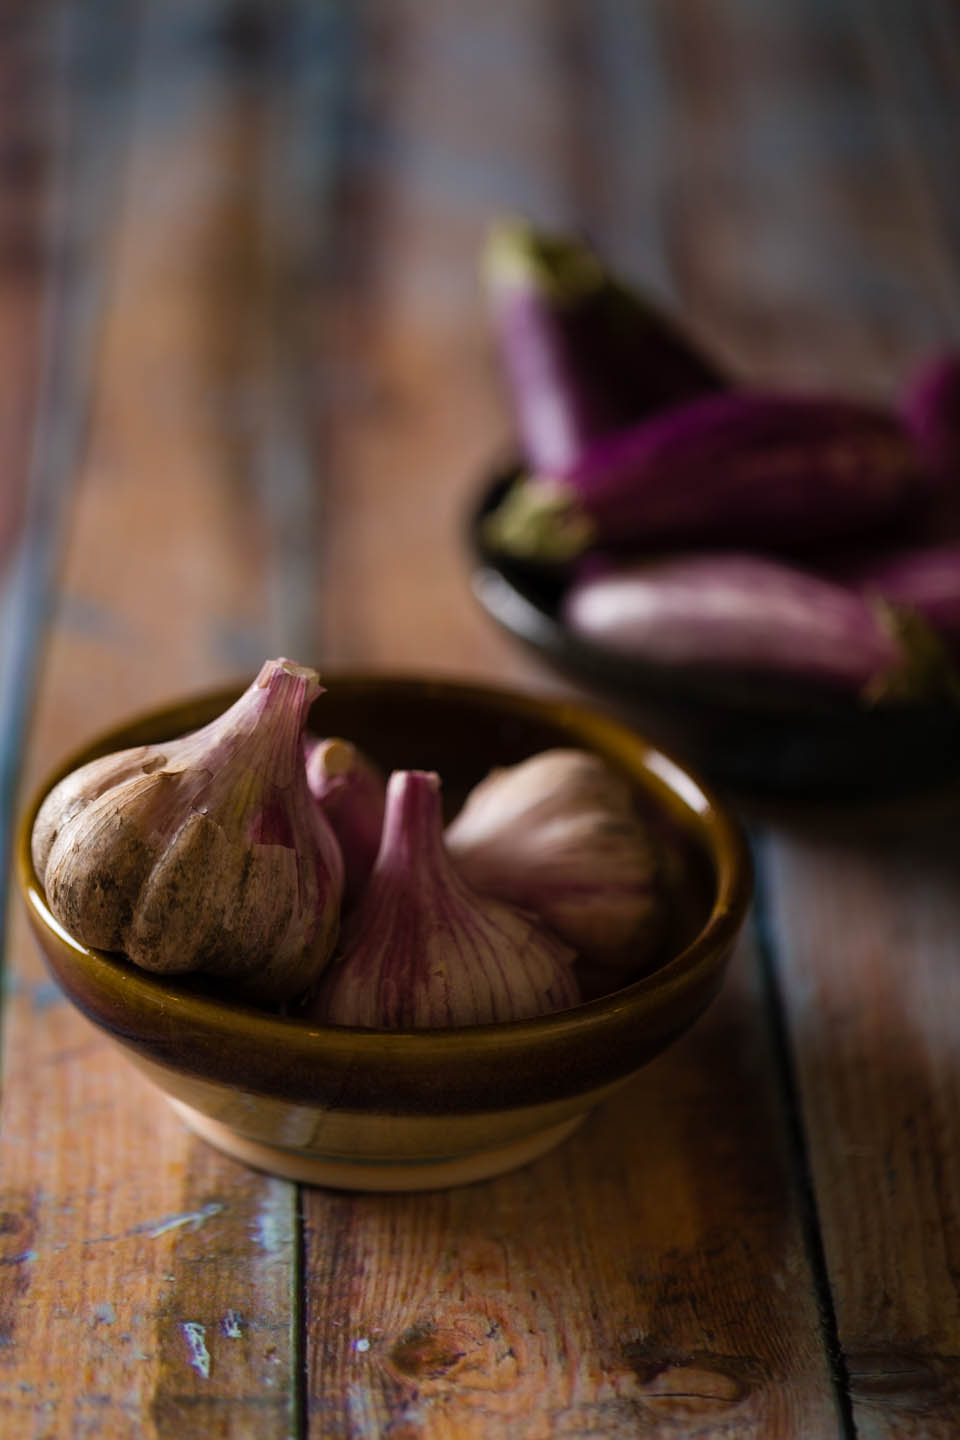 Garlic and eggplant with props